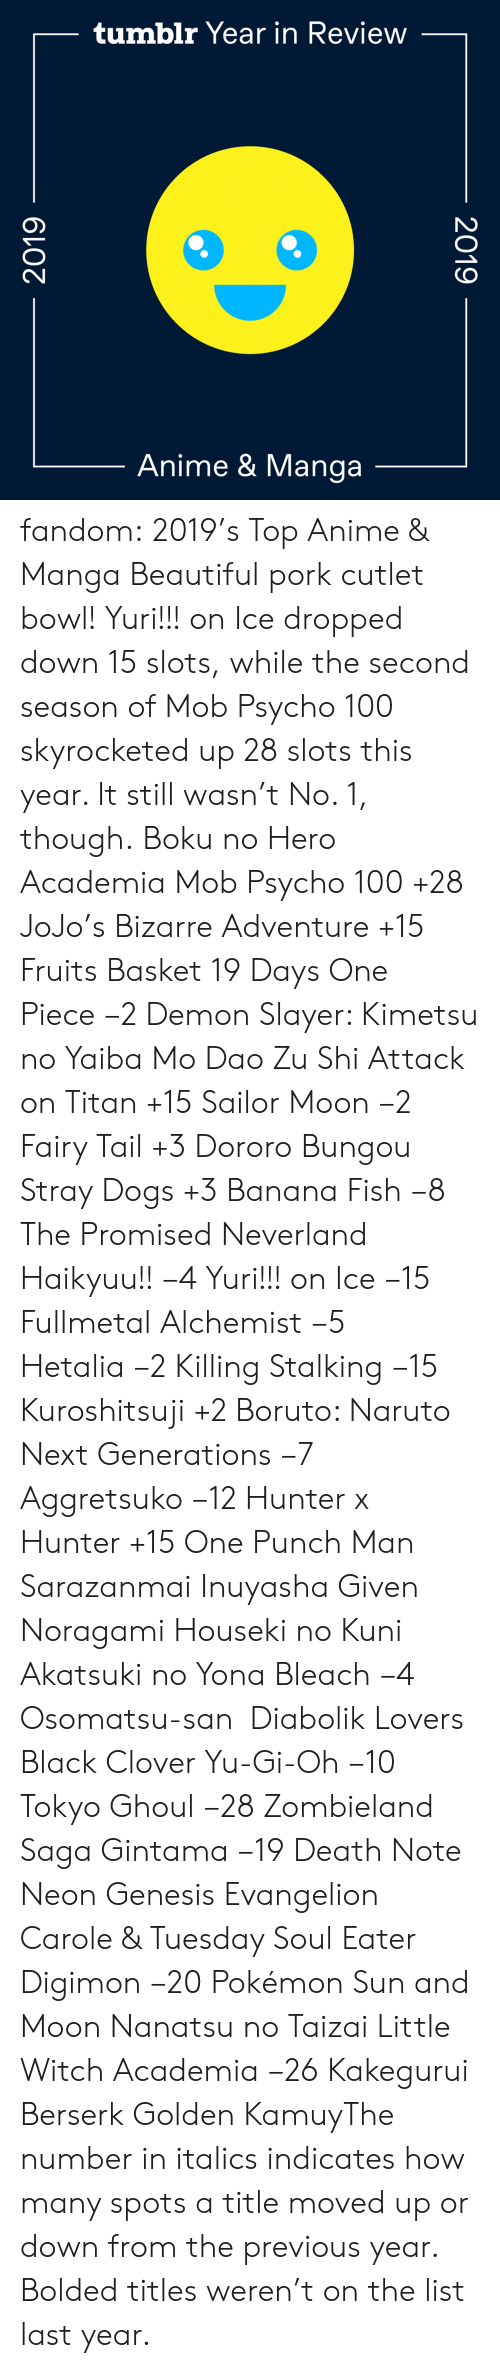 Promised: tumblr Year in Review  Anime & Manga  2019  2019 fandom:  2019's Top Anime & Manga  Beautiful pork cutlet bowl! Yuri!!! on Ice dropped down 15 slots, while the second season of Mob Psycho 100 skyrocketed up 28 slots this year. It still wasn't No. 1, though.  Boku no Hero Academia  Mob Psycho 100 +28  JoJo's Bizarre Adventure +15  Fruits Basket  19 Days  One Piece −2  Demon Slayer: Kimetsu no Yaiba  Mo Dao Zu Shi  Attack on Titan +15  Sailor Moon −2  Fairy Tail +3  Dororo  Bungou Stray Dogs +3  Banana Fish −8  The Promised Neverland  Haikyuu!! −4  Yuri!!! on Ice −15  Fullmetal Alchemist −5  Hetalia −2  Killing Stalking −15  Kuroshitsuji +2  Boruto: Naruto Next Generations −7  Aggretsuko −12  Hunter x Hunter +15  One Punch Man  Sarazanmai  Inuyasha  Given  Noragami  Houseki no Kuni  Akatsuki no Yona  Bleach −4  Osomatsu-san   Diabolik Lovers  Black Clover  Yu-Gi-Oh −10  Tokyo Ghoul −28  Zombieland Saga  Gintama −19  Death Note  Neon Genesis Evangelion  Carole & Tuesday  Soul Eater  Digimon −20  Pokémon Sun and Moon  Nanatsu no Taizai  Little Witch Academia −26  Kakegurui  Berserk Golden KamuyThe number in italics indicates how many spots a title moved up or down from the previous year. Bolded titles weren't on the list last year.